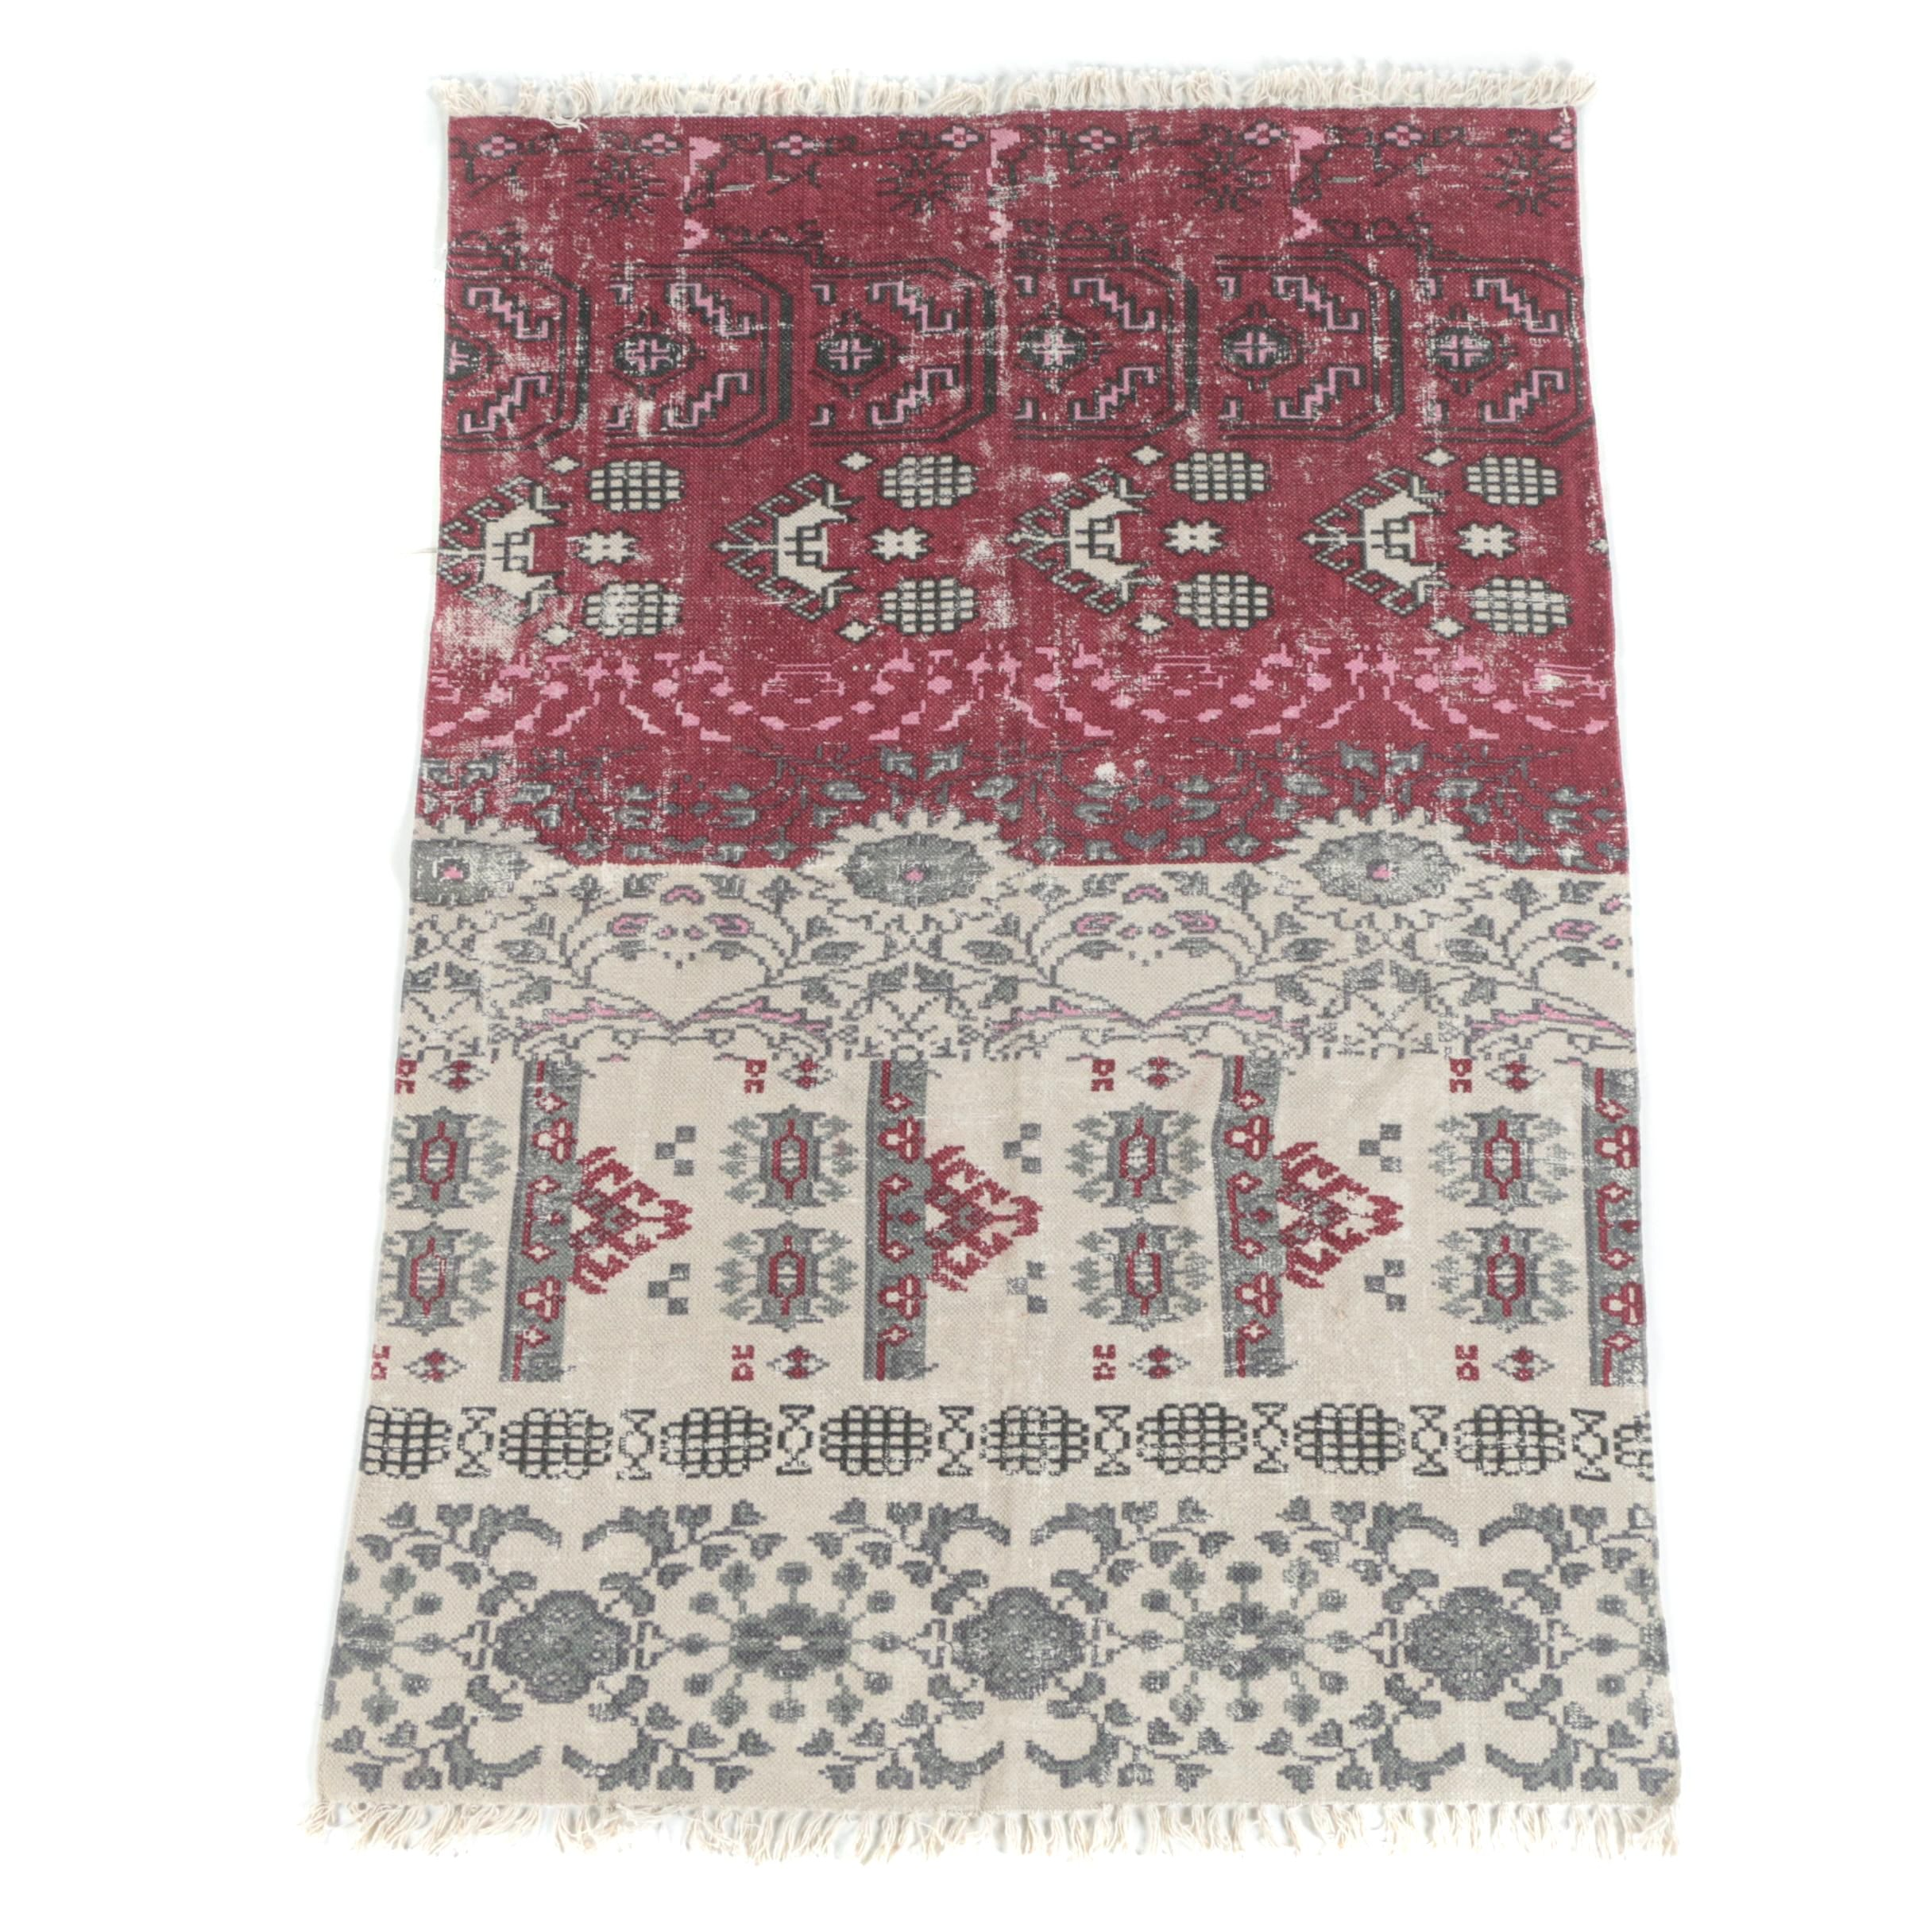 Handwoven Indian Cotton Area Rug